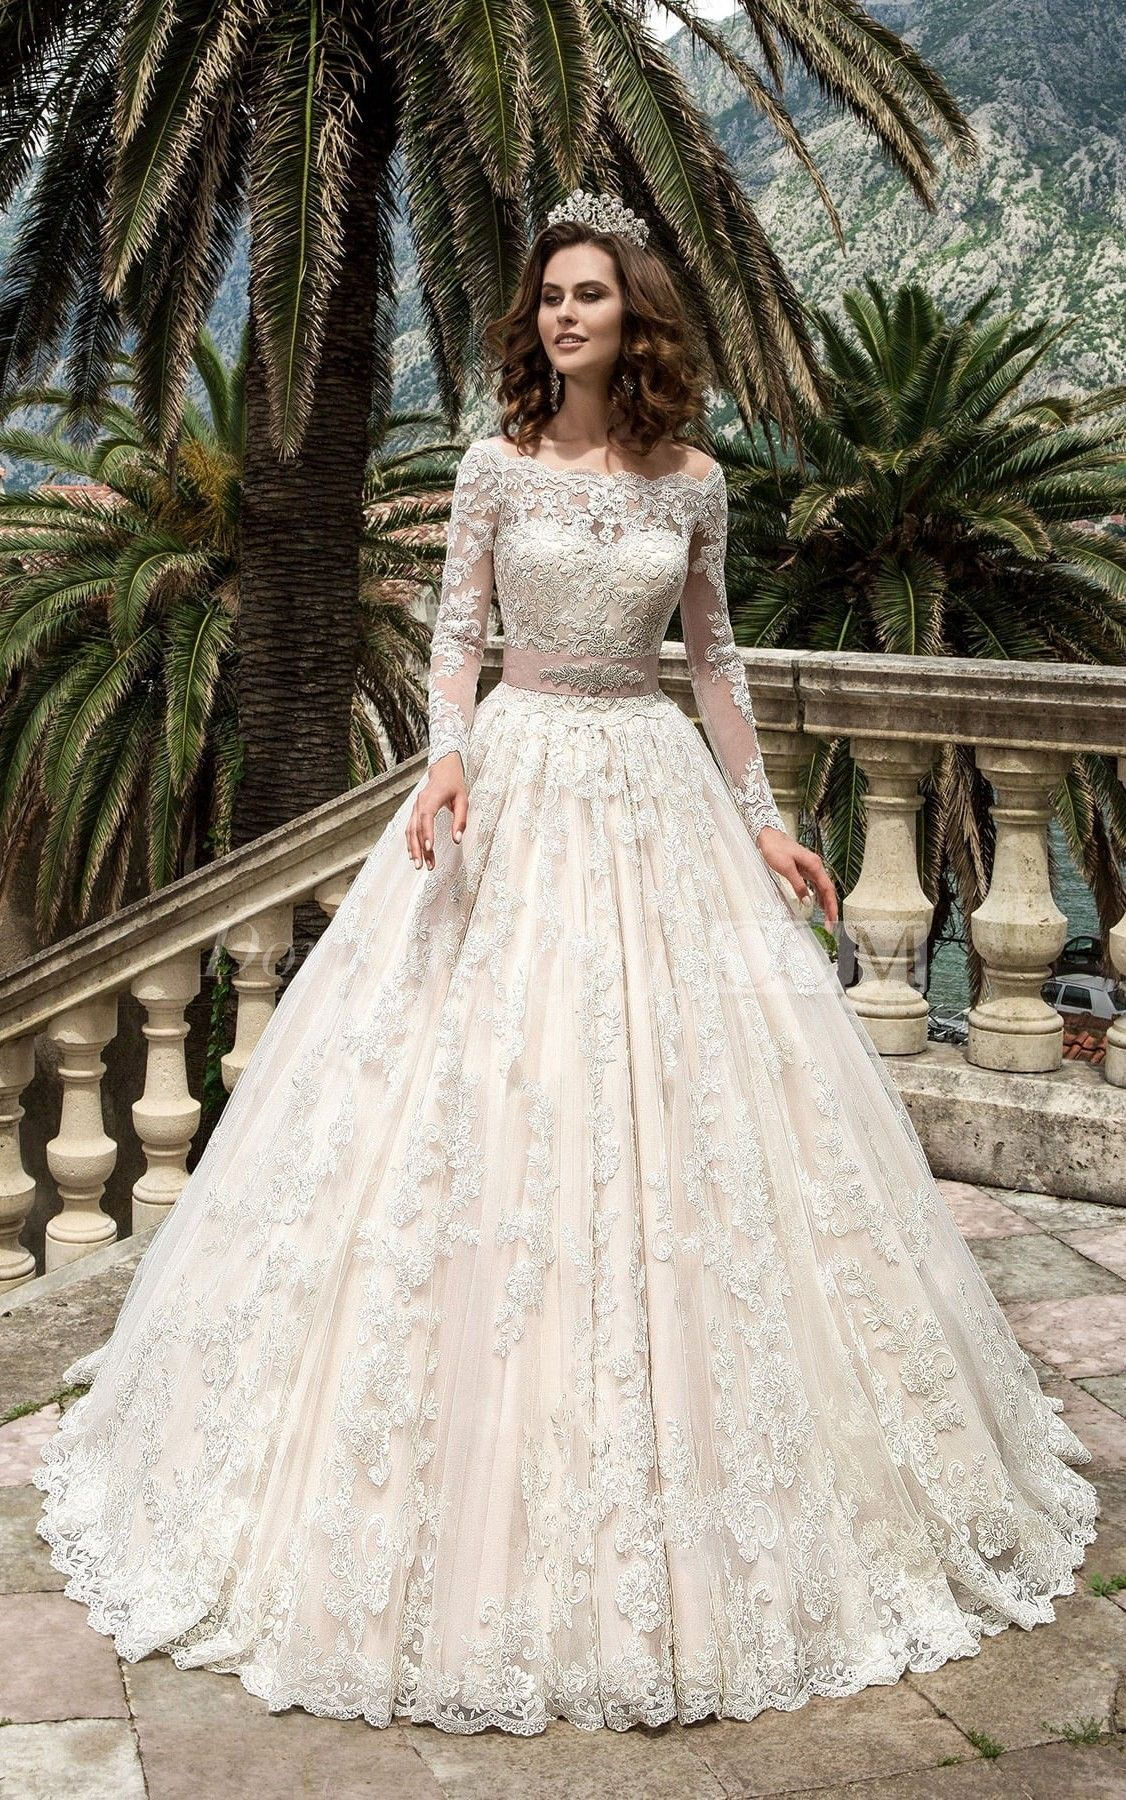 Bateau Neck Long Sleeve A Line Lace Wedding Dress With Beaded Sash Ball Gowns Wedding Long Wedding Dresses Modest Wedding Dresses